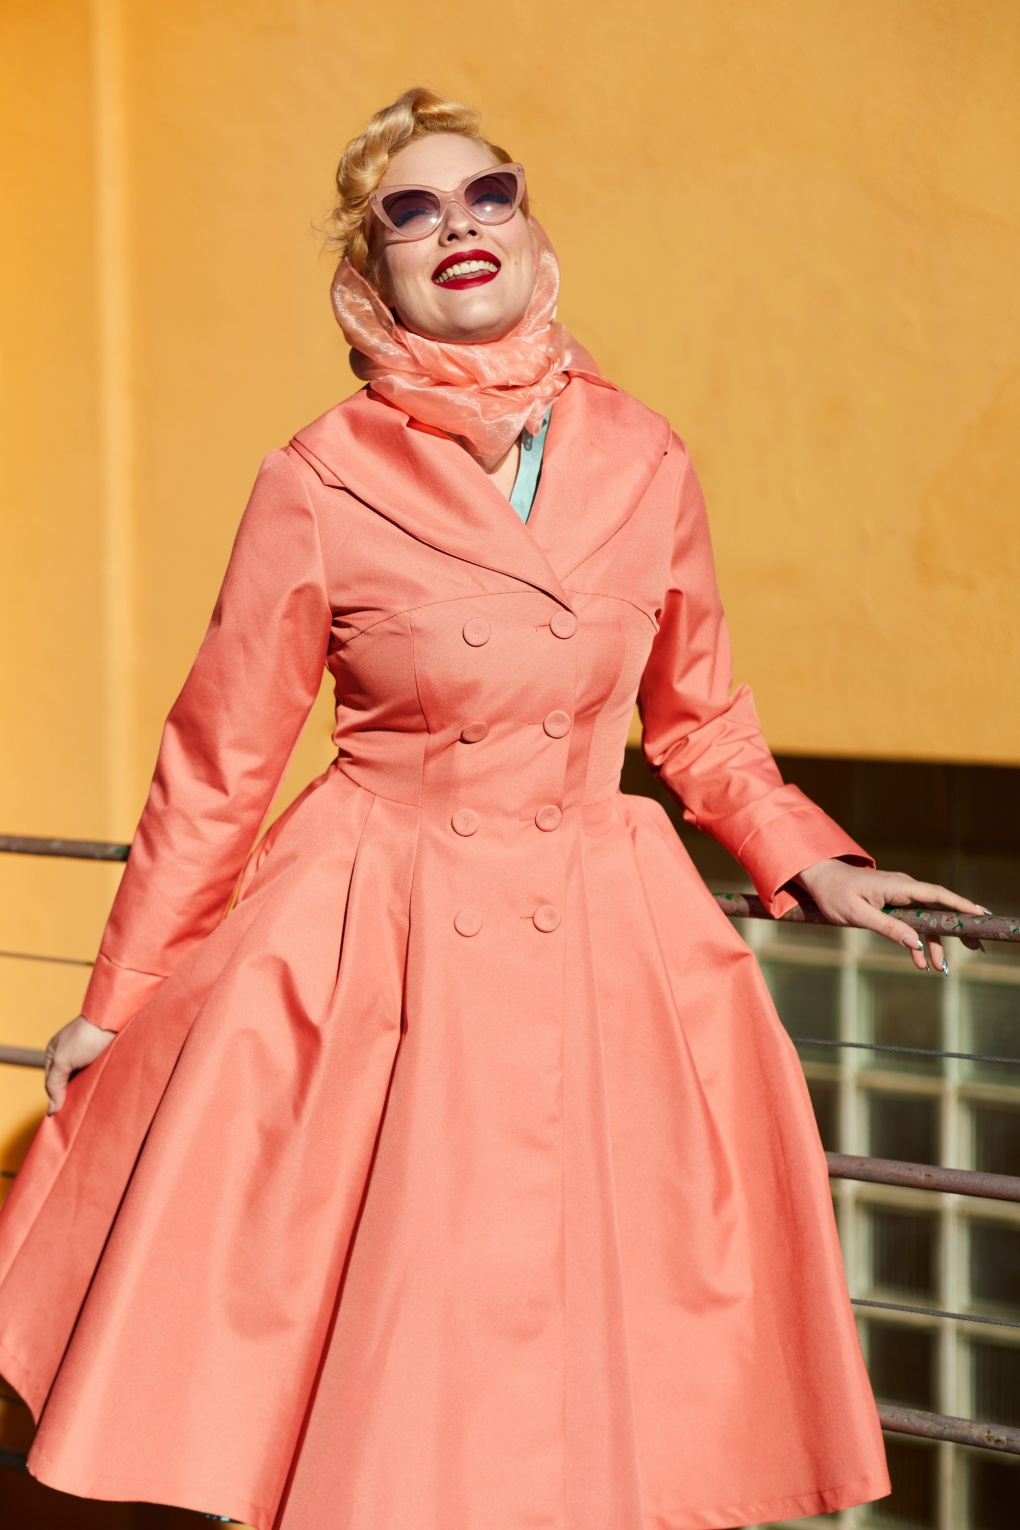 1950s Jackets, Coats, Bolero | Swing, Pin Up, Rockabilly 50s Cleobella Swing Trench Coat in Coral Pink £128.08 AT vintagedancer.com